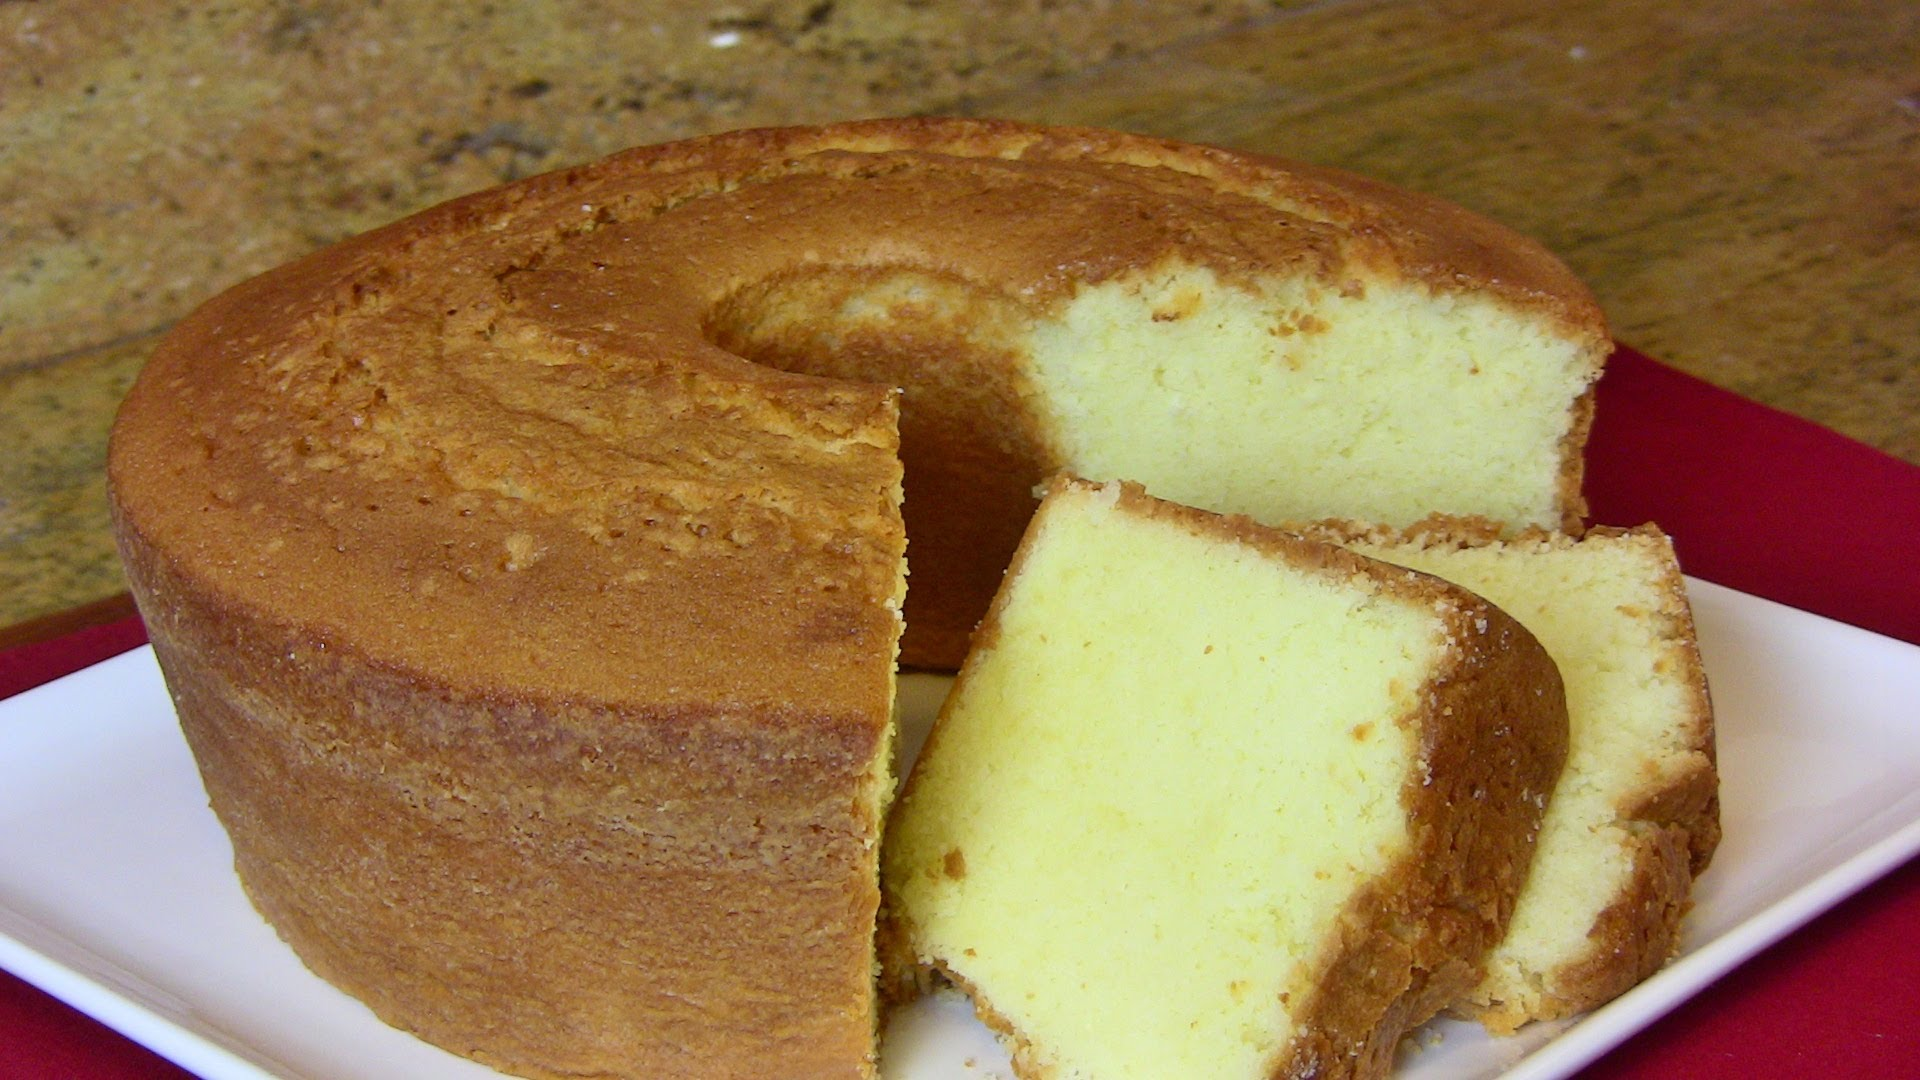 How To Make A Homemade Lemon Pound Cake